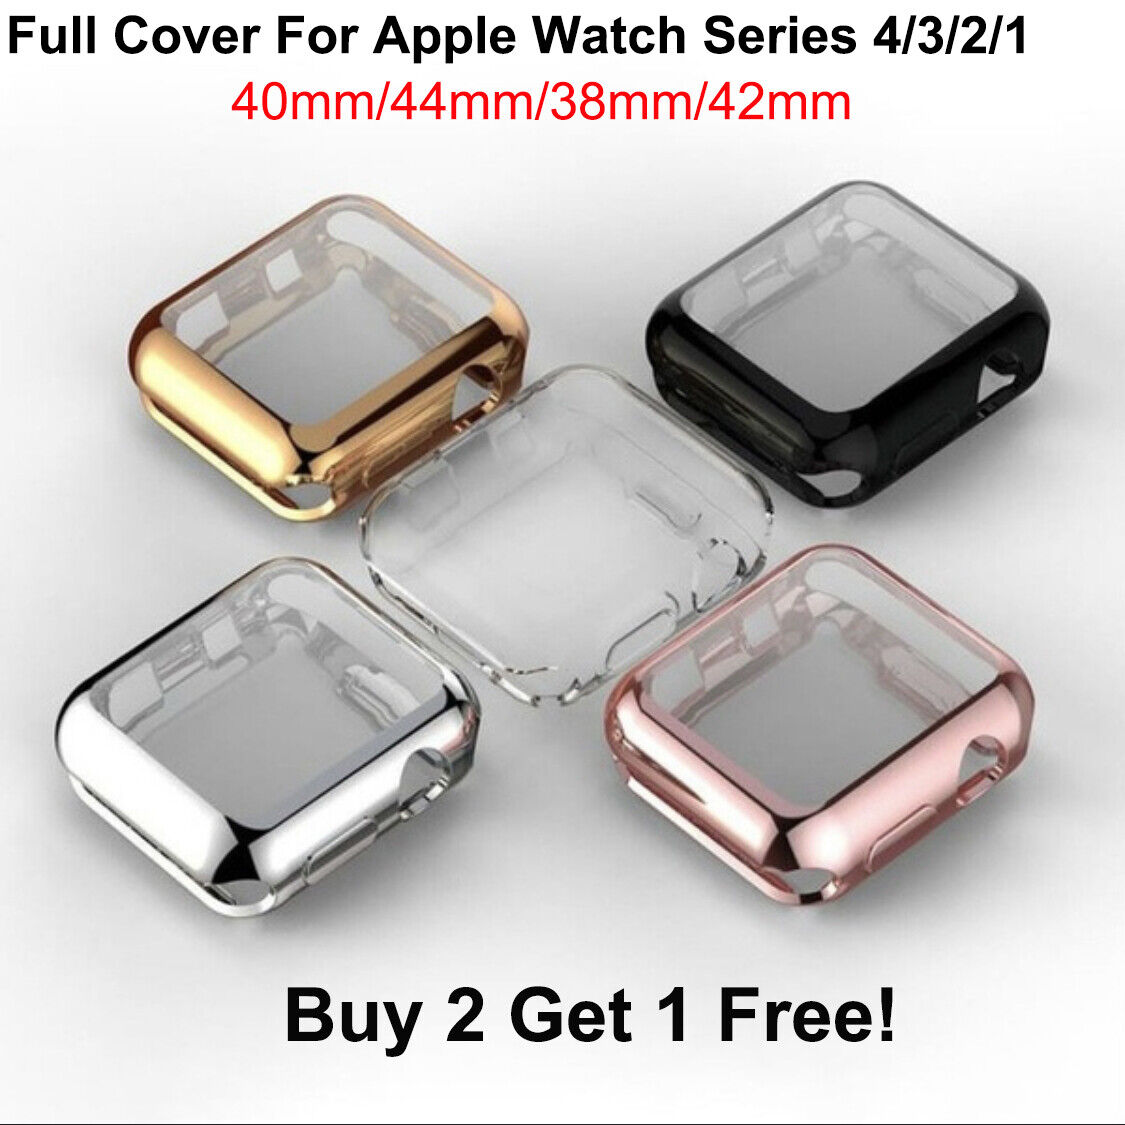 For Apple Watch 4 3 2 1 TPU Case Cover Screen Protector iWatch (38/42mm 40/44mm) Cases, Covers & Skins